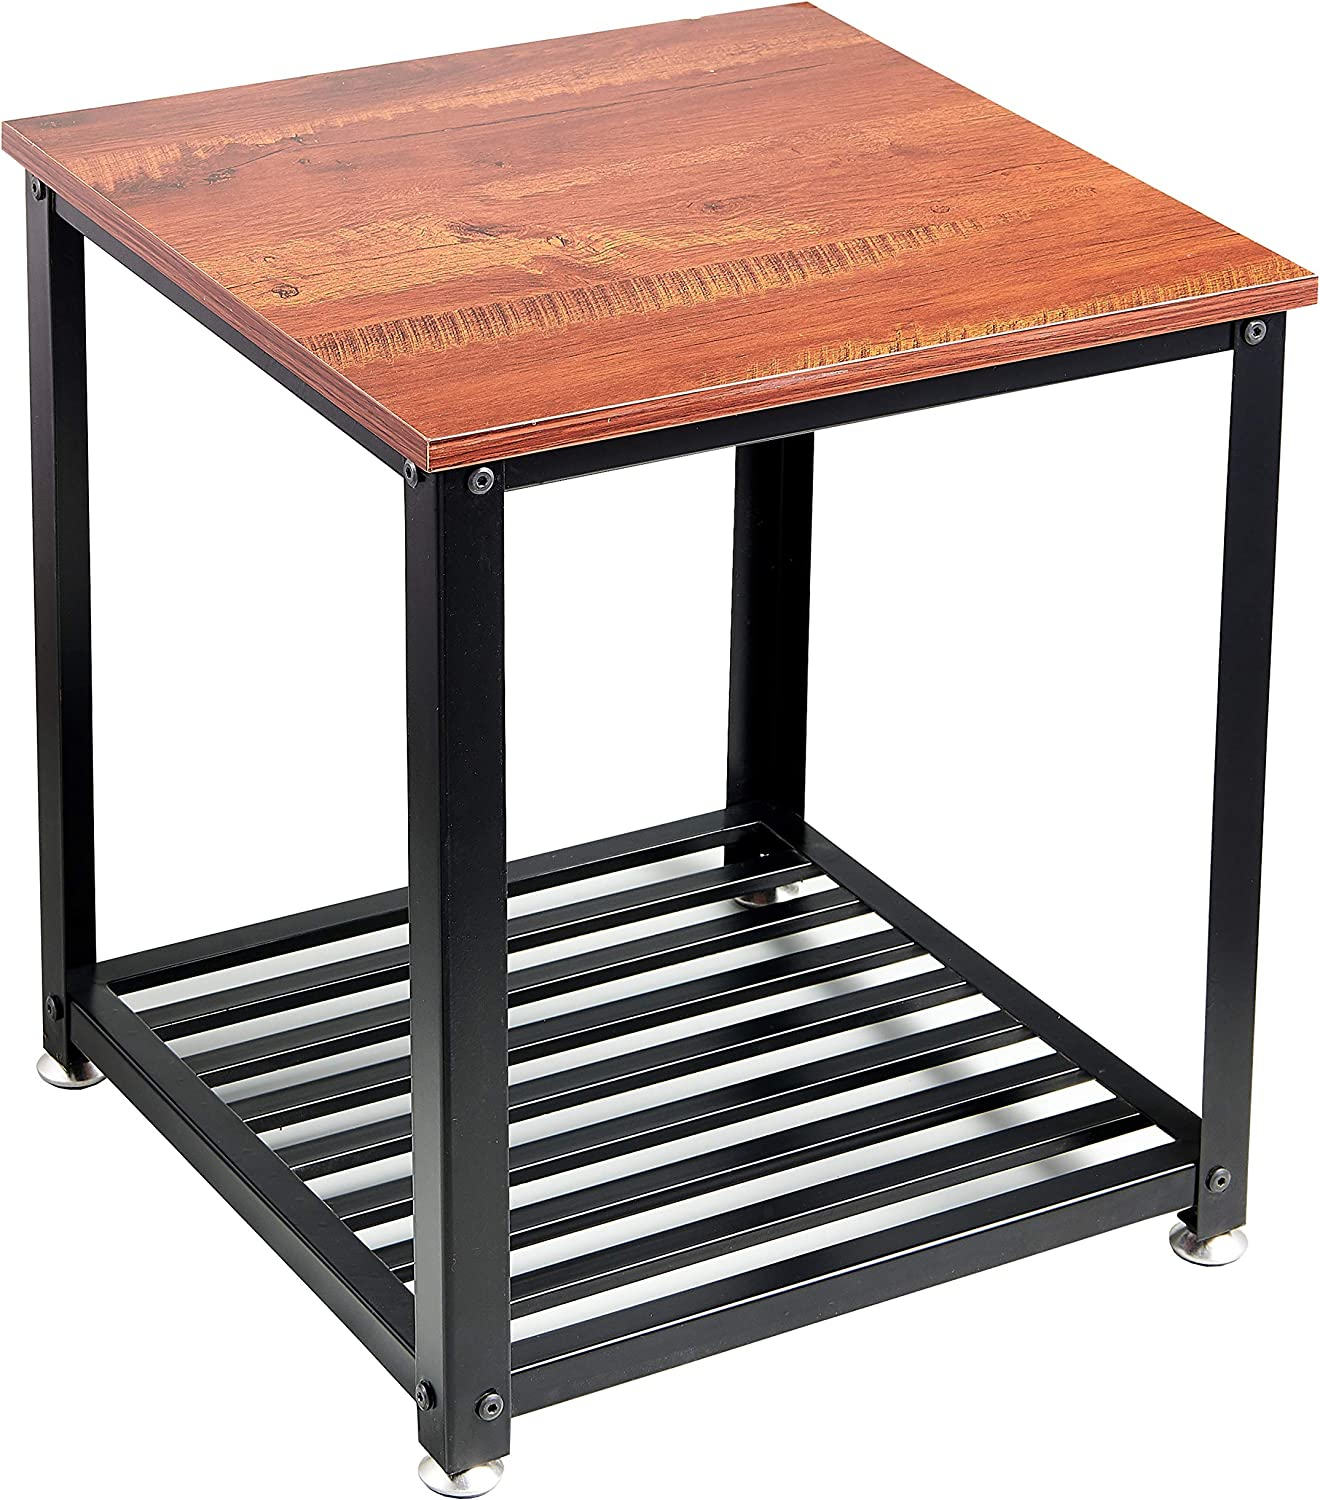 Loglus End Table/Side Table with Metal Shelf for Living Room, Office, Easy Assembly (ET001)